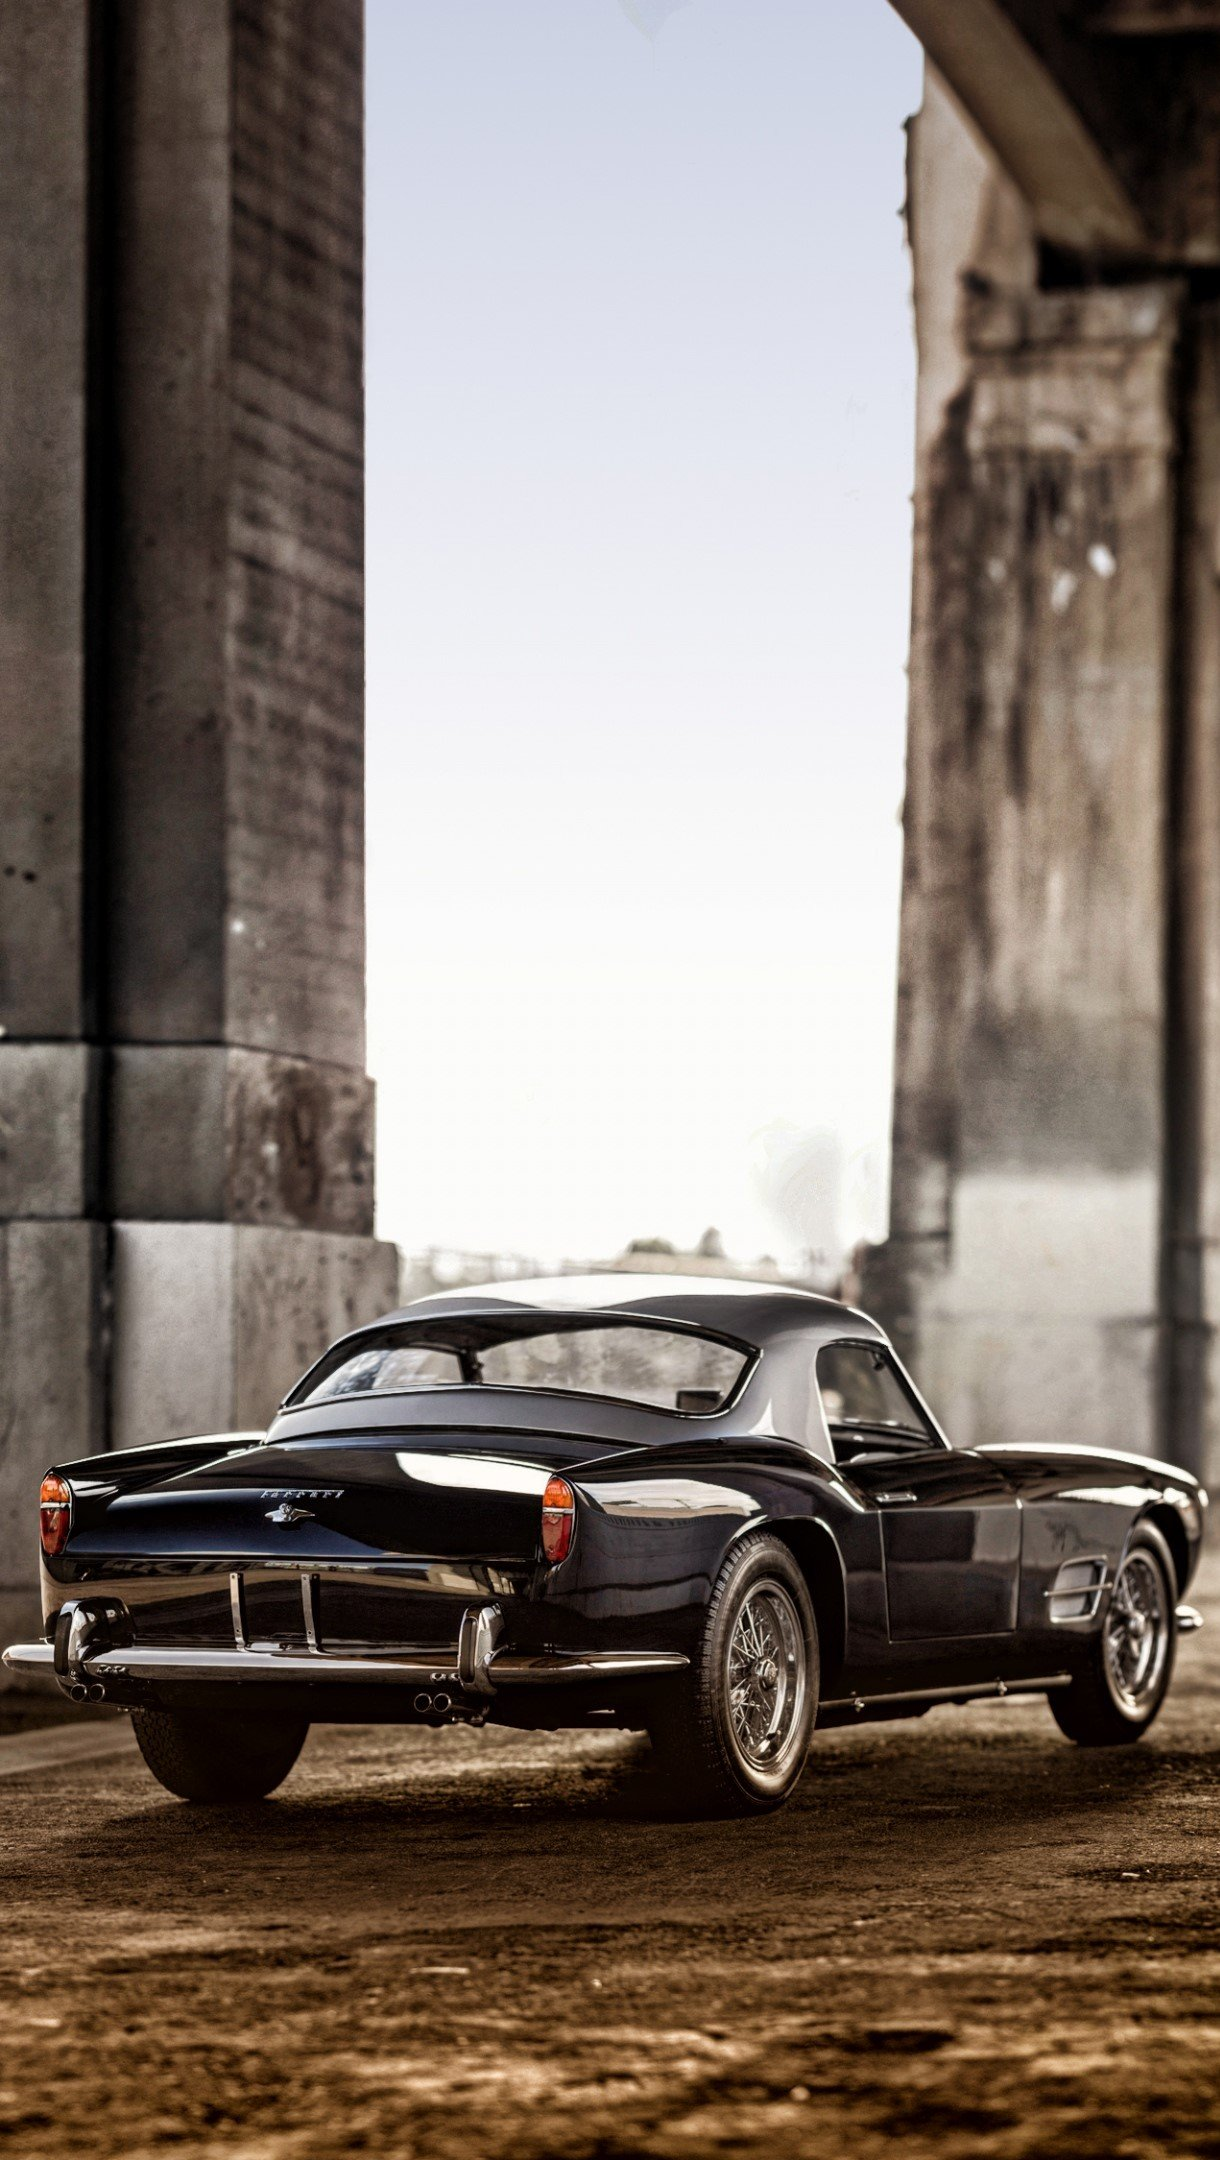 Wallpaper Ferrari 250 GT 1959 Vertical